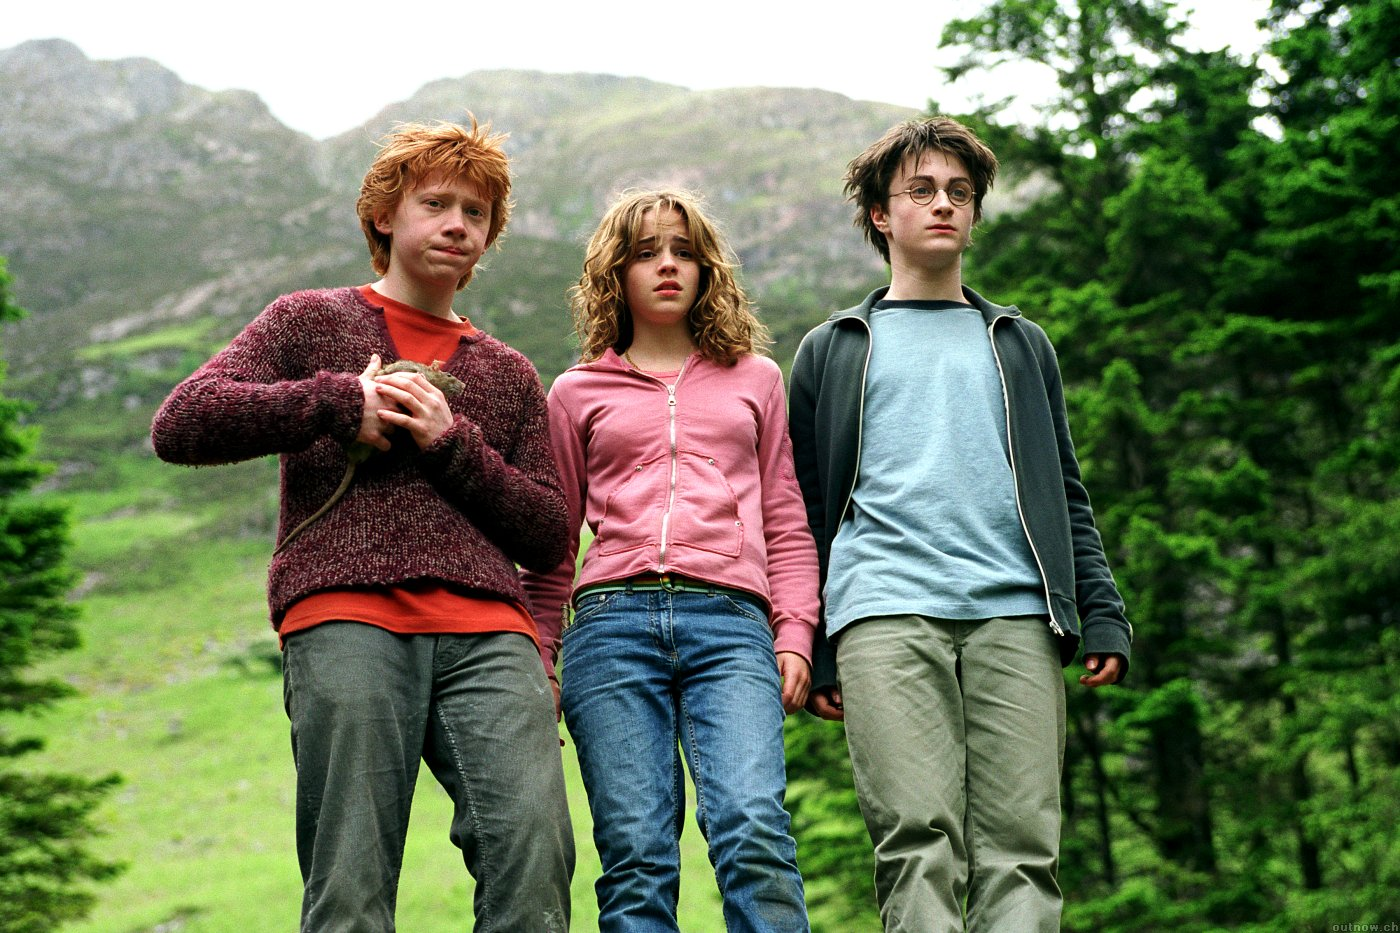 Ron Weasley (Rupert Grint), Hermione Granger (Emma Watson) and Harry Potter (Daniel Radcliffe) in Harry Potter and the Prisoner of Azkaban (2004)